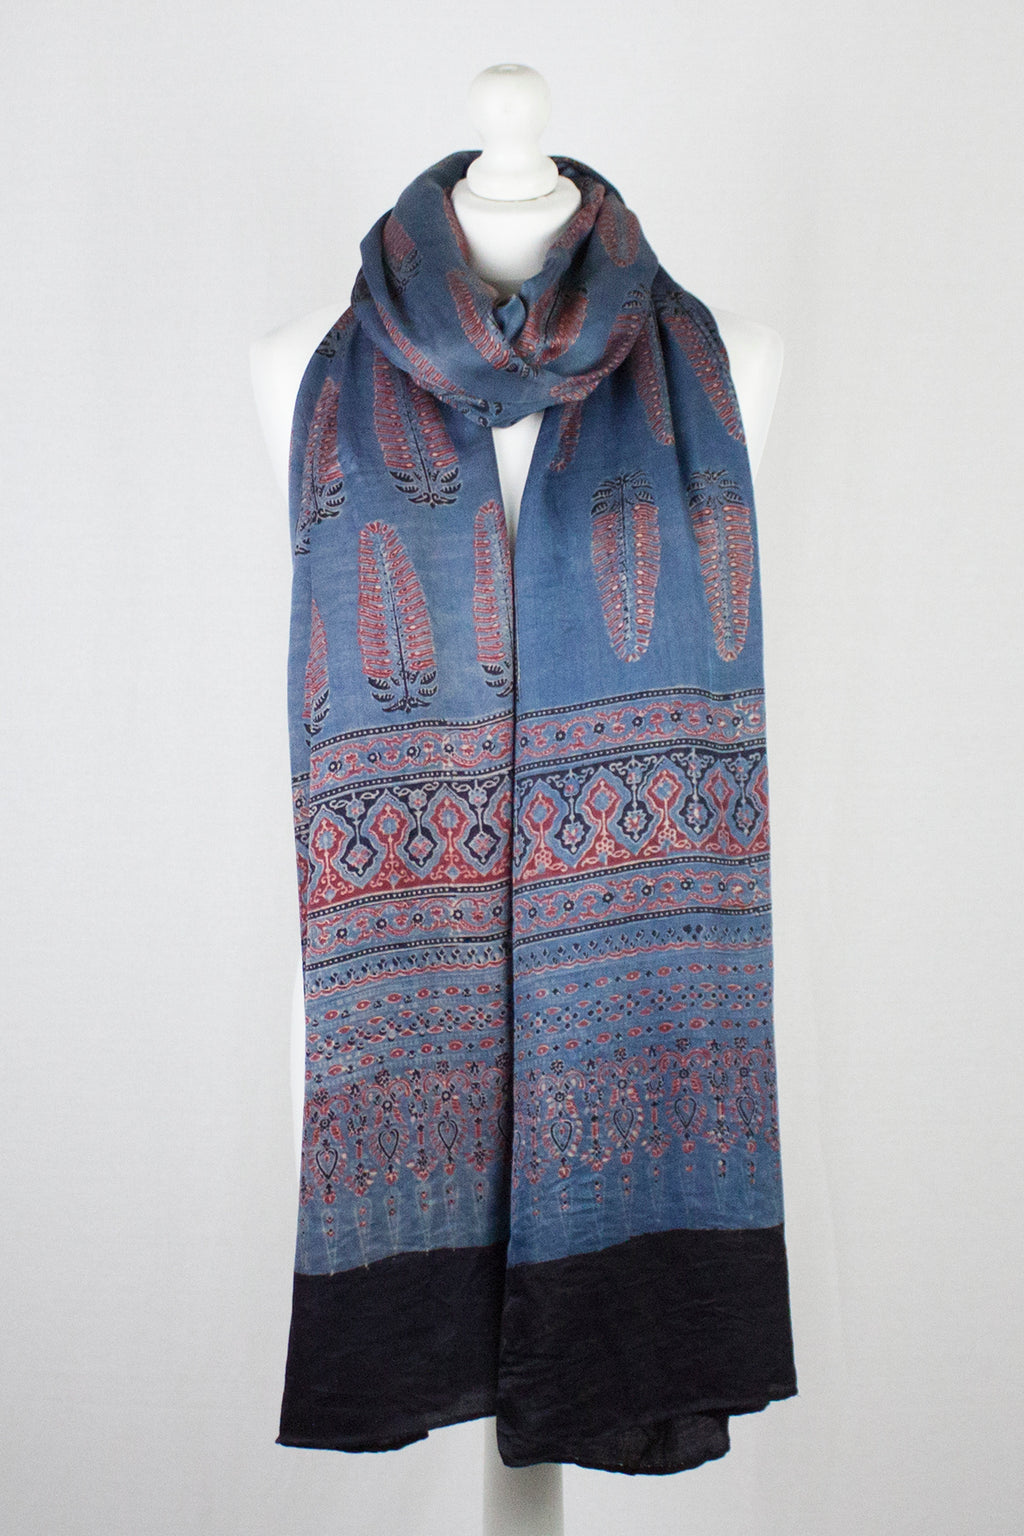 Tree Motif Ajrakh Print Silk Scarf - Blue Red